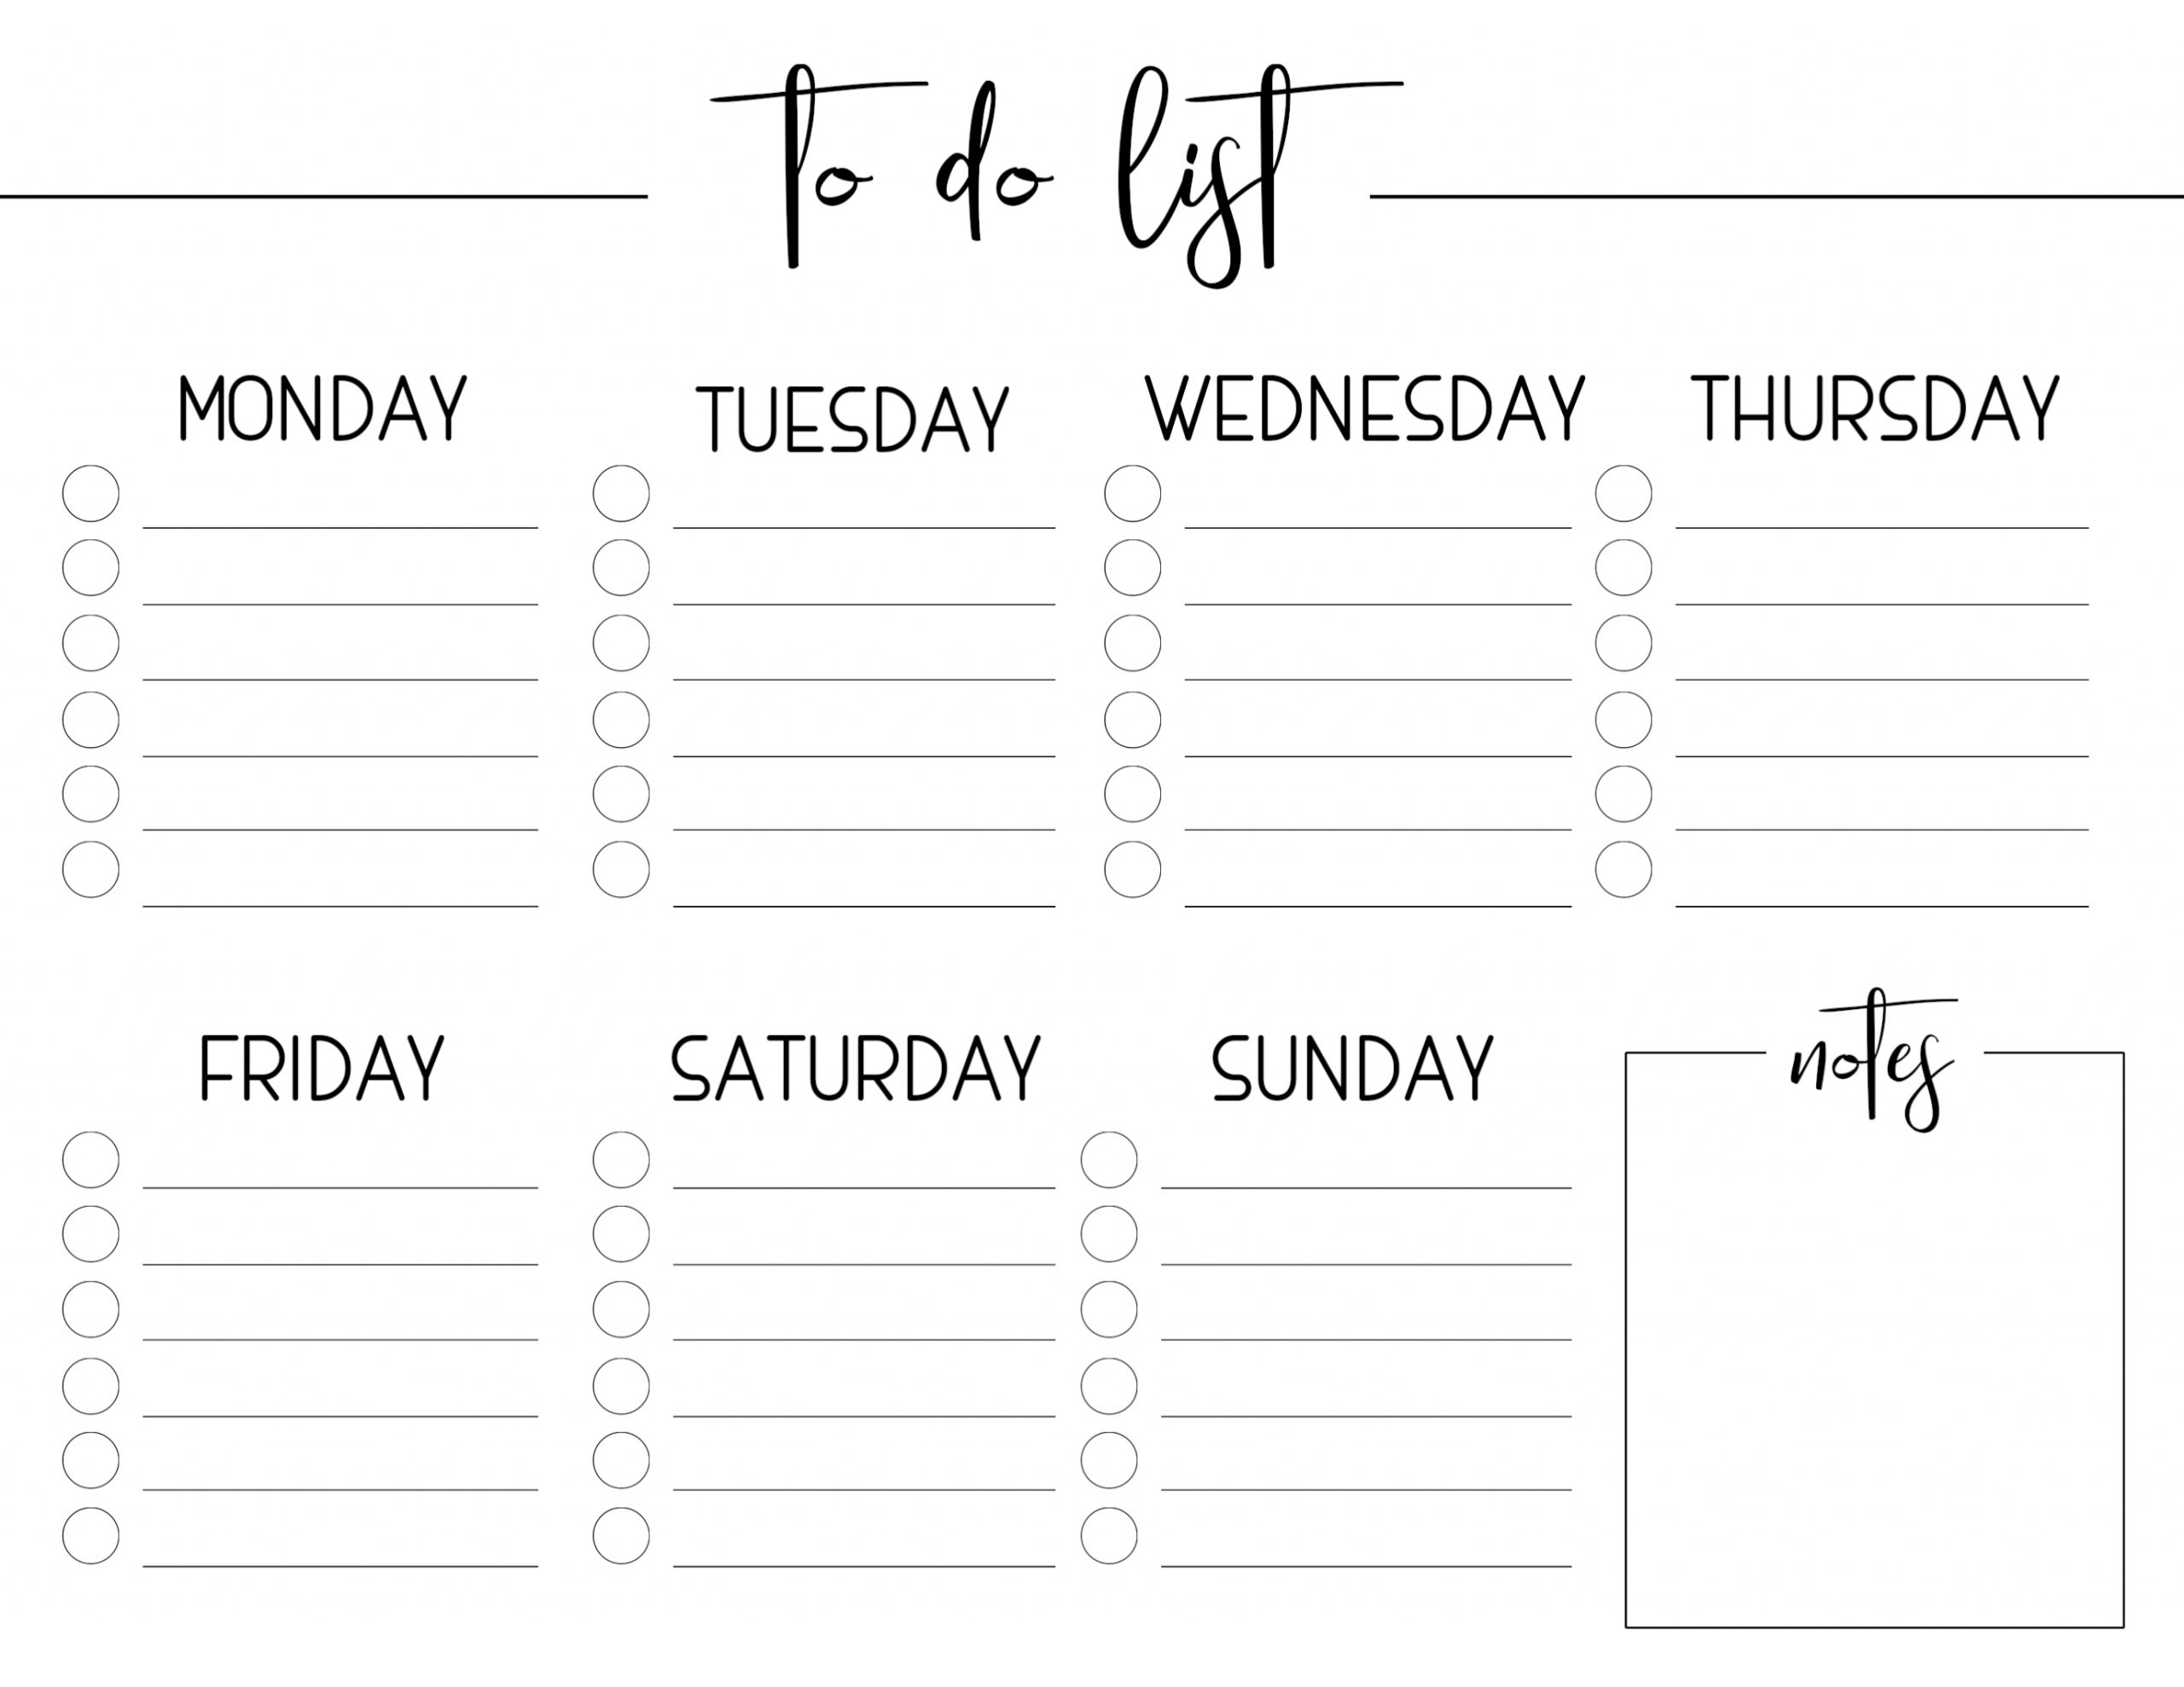 Collect Blank Monday – Friday To Do Checklist